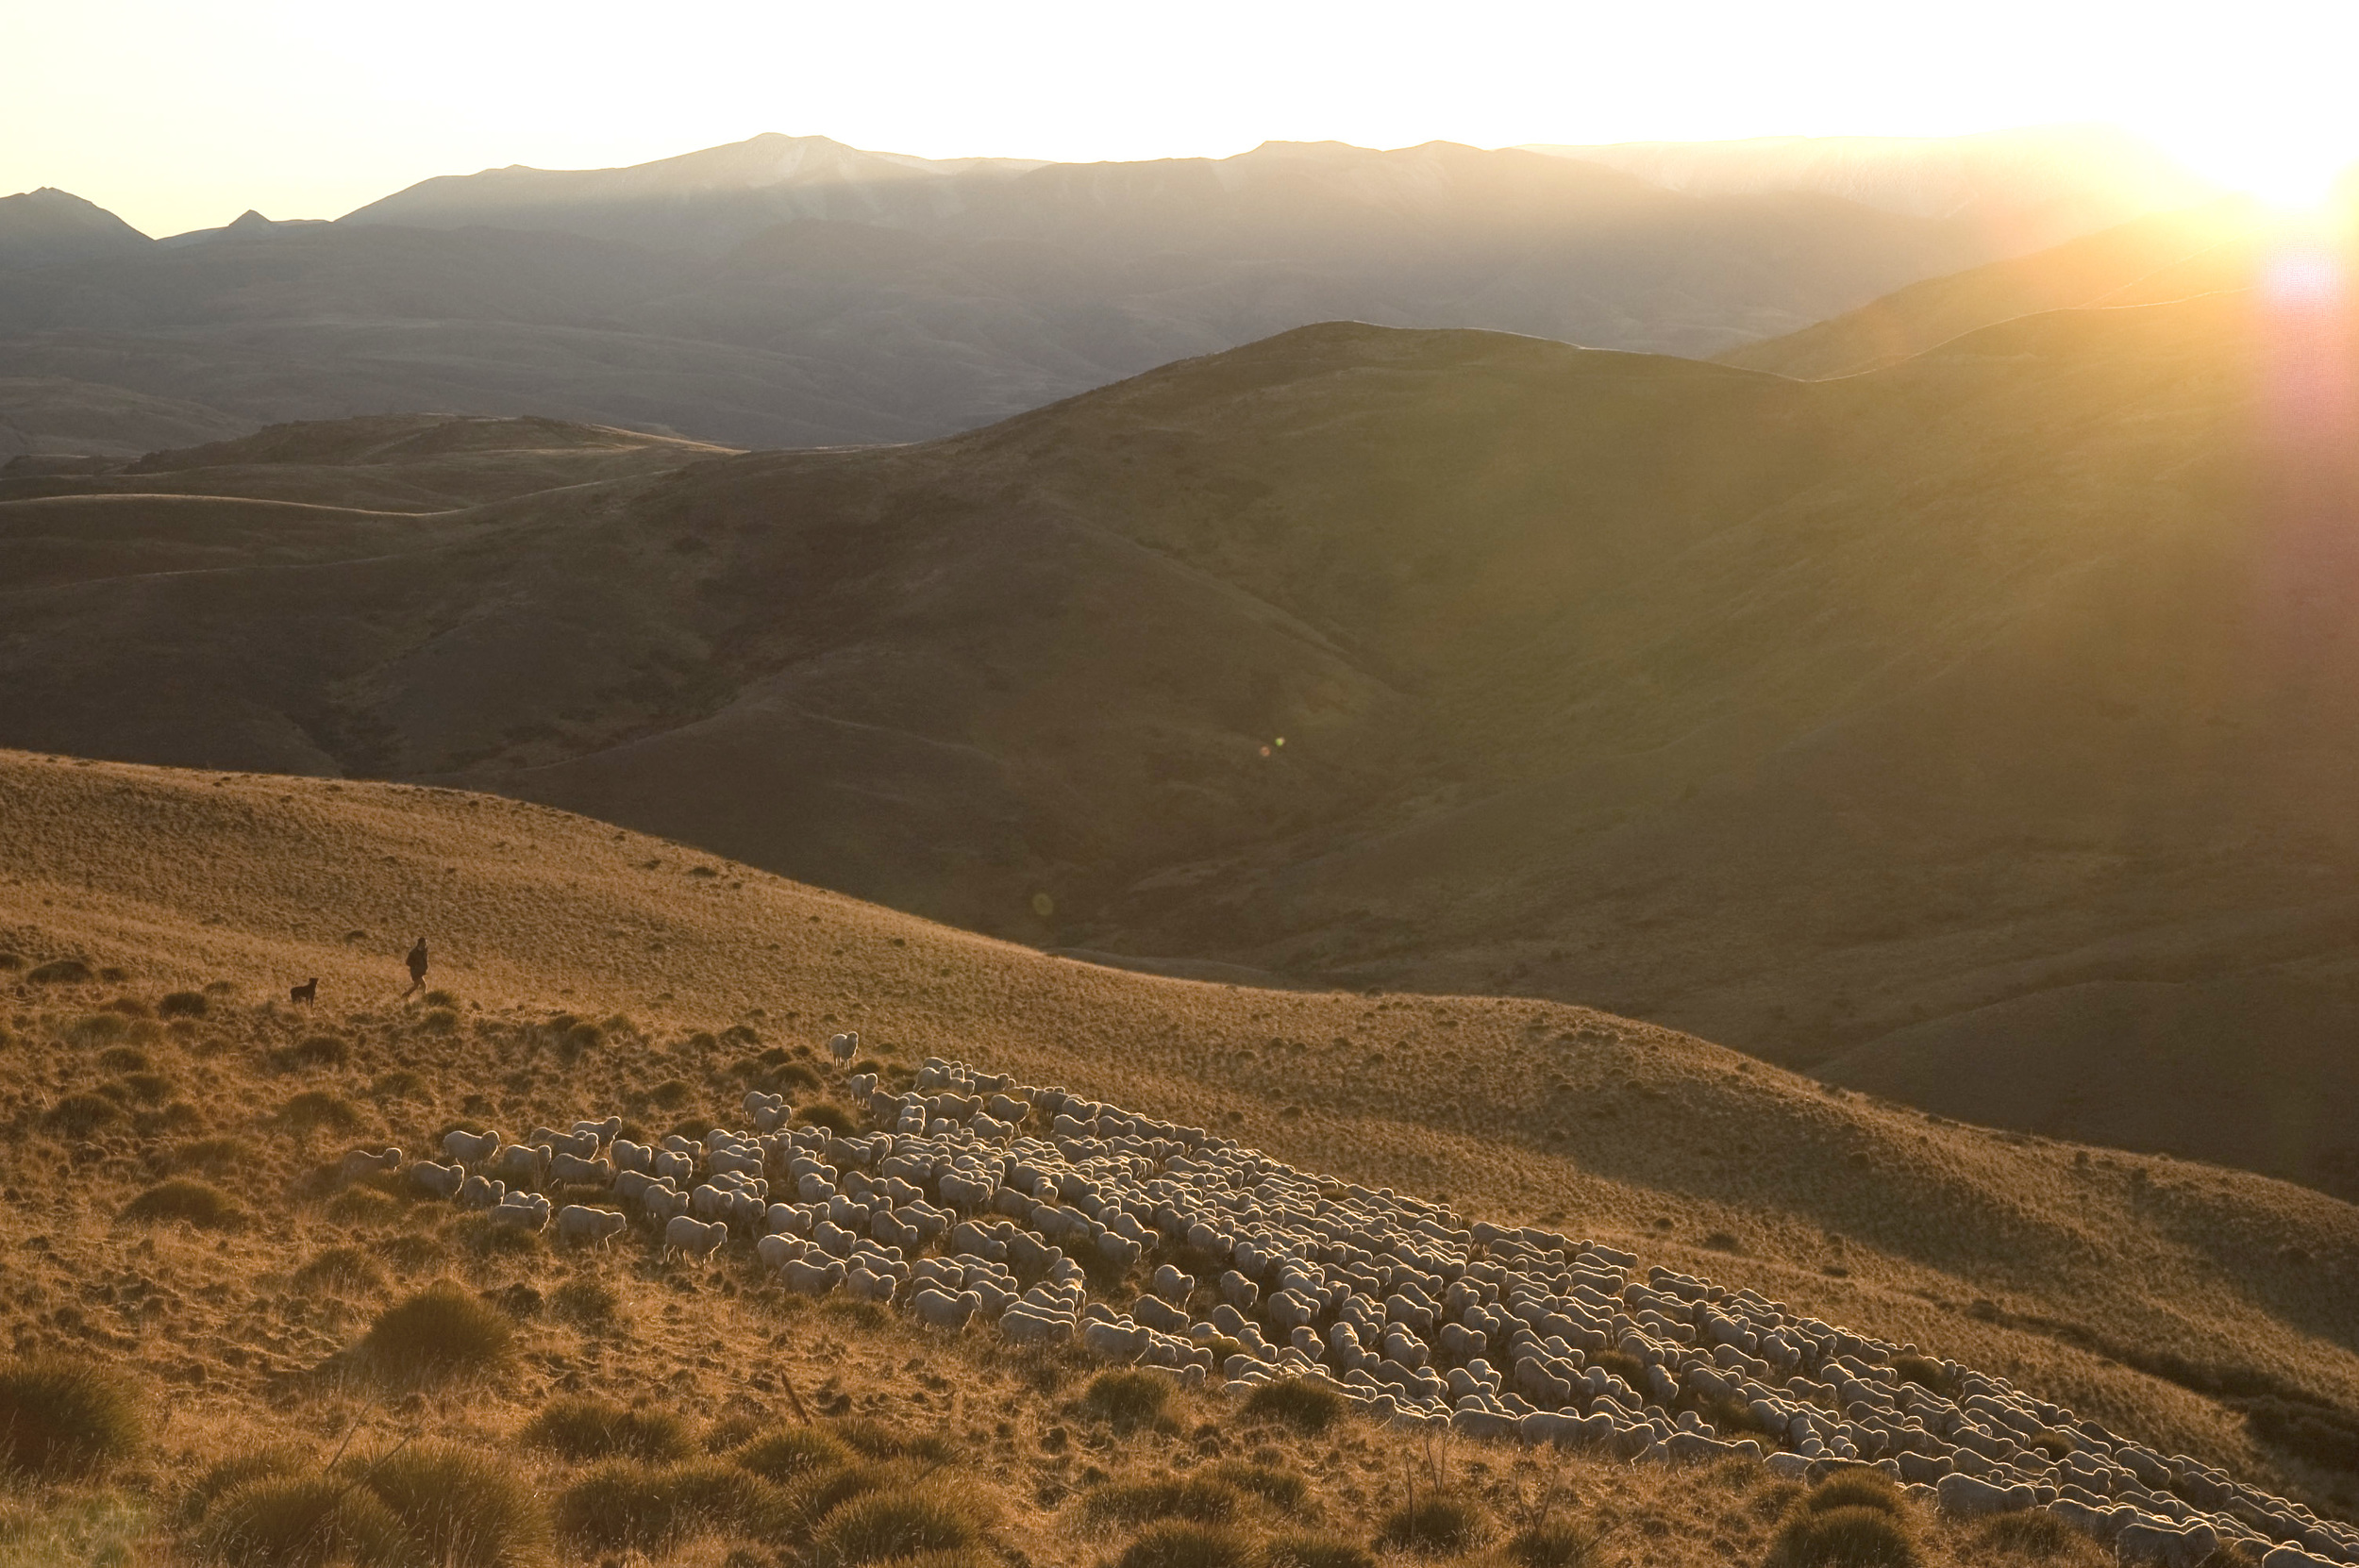 Sunset at a ZQ Merino Ranch in New Zealand  (Courtesy of the New Zealand Merino Company)